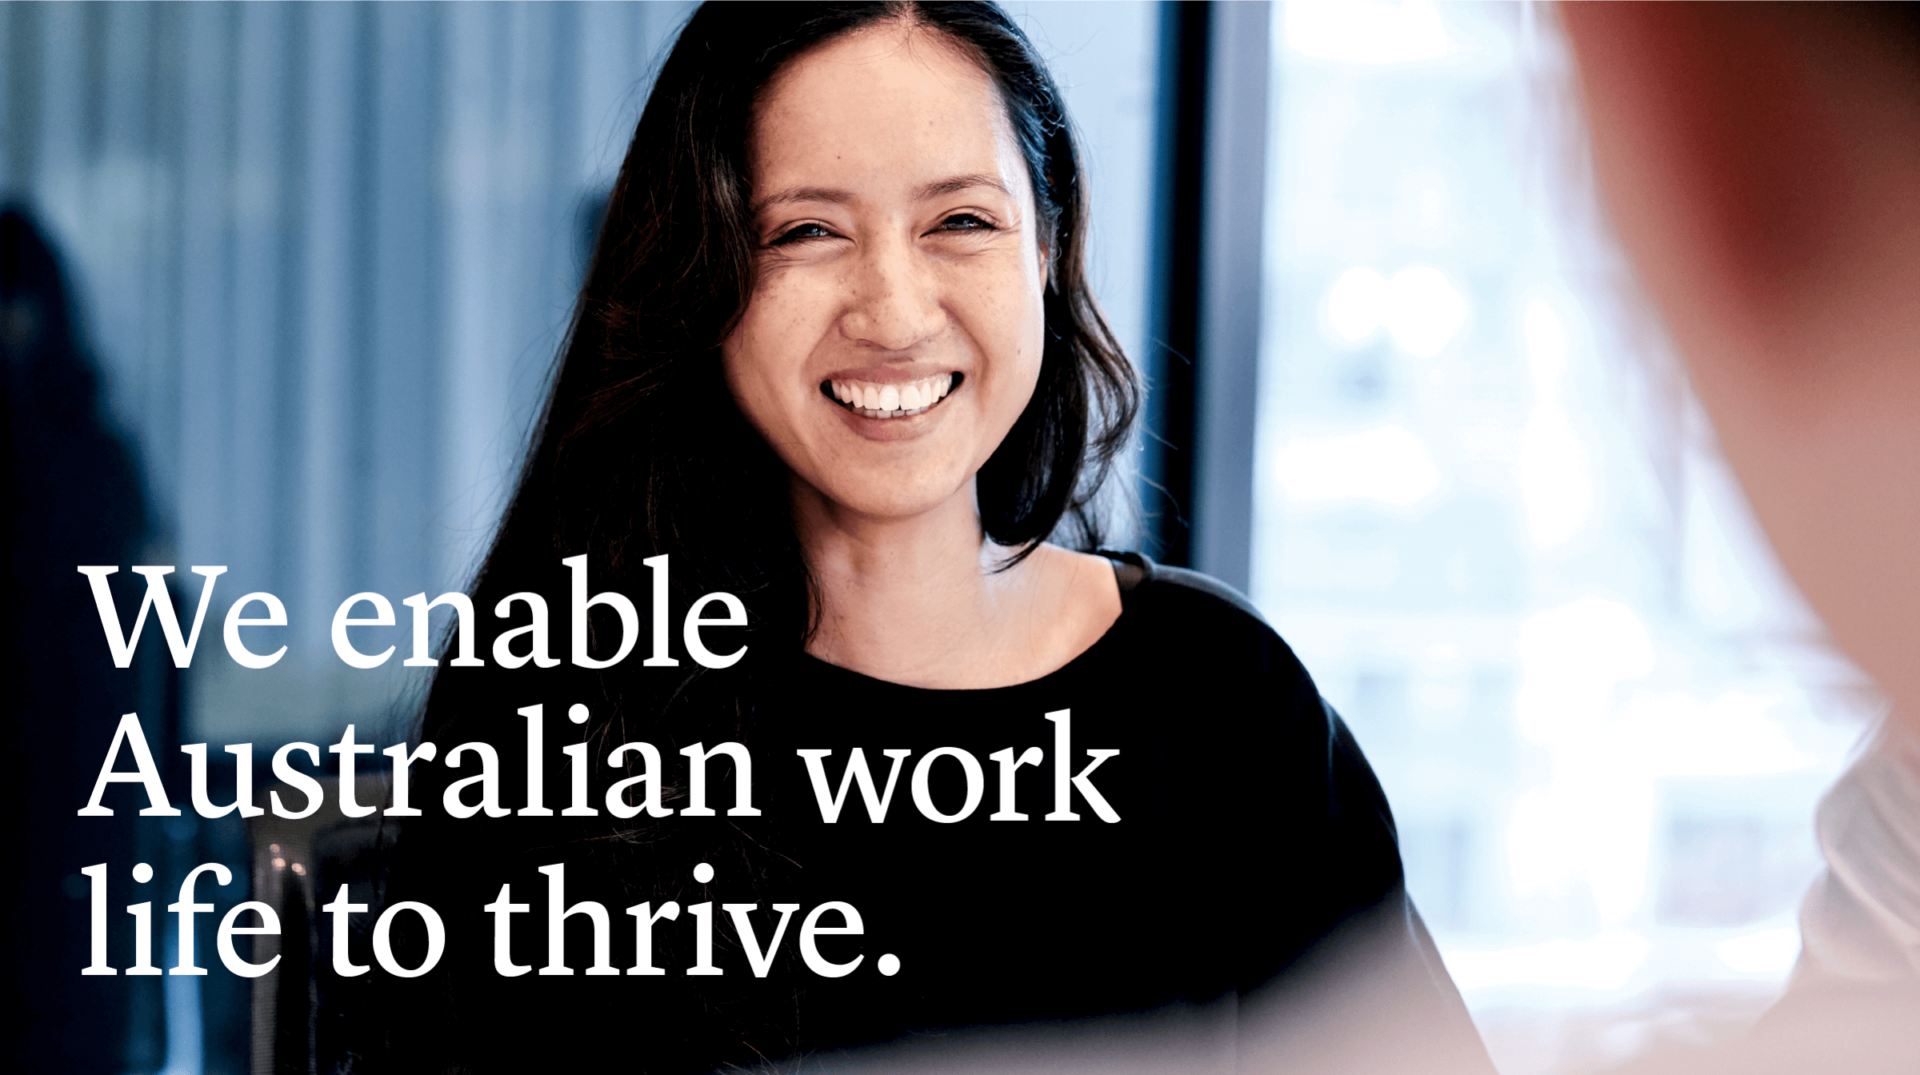 We enable Australian work life to thrive.